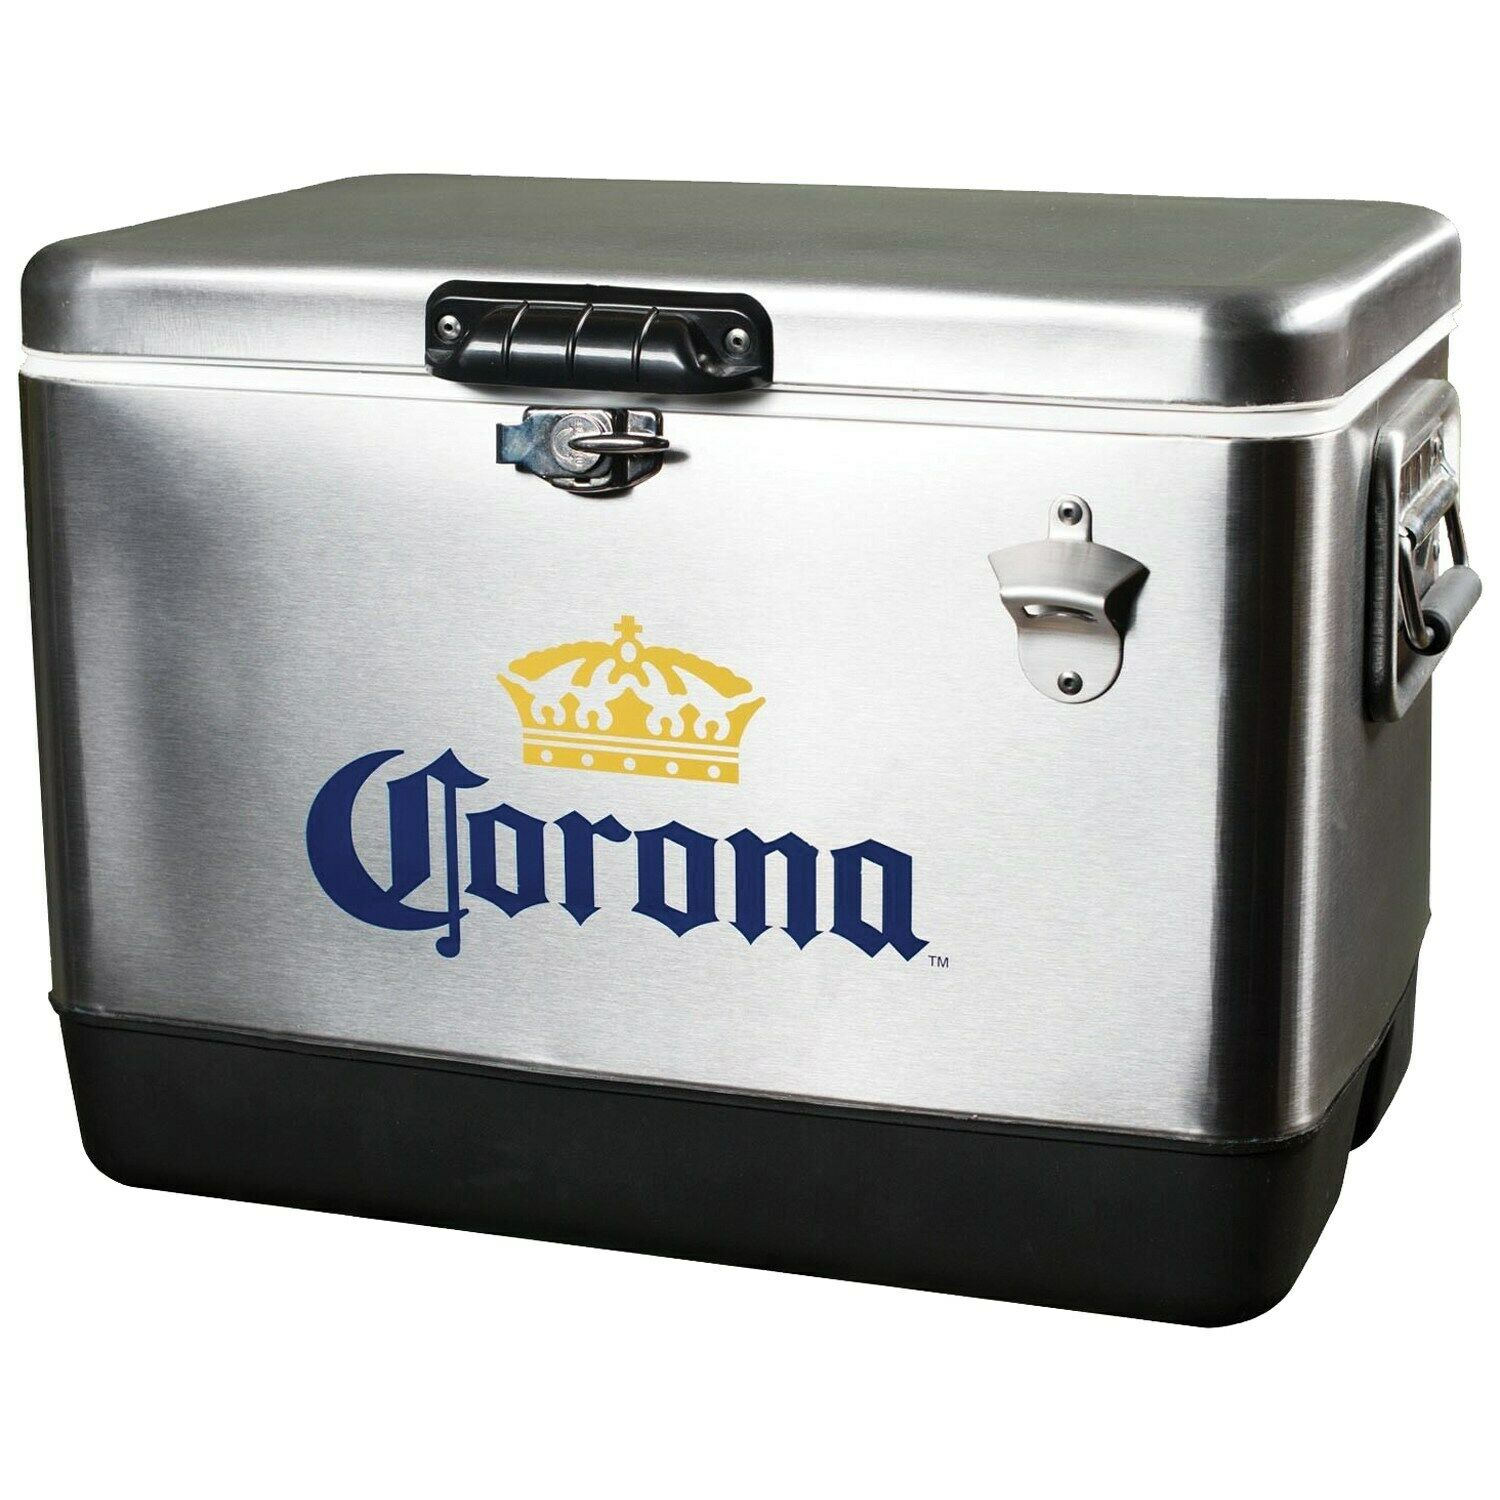 Cgoldna Stainless Steel Beer Cooler 54 quart with Opener - Free Shipping